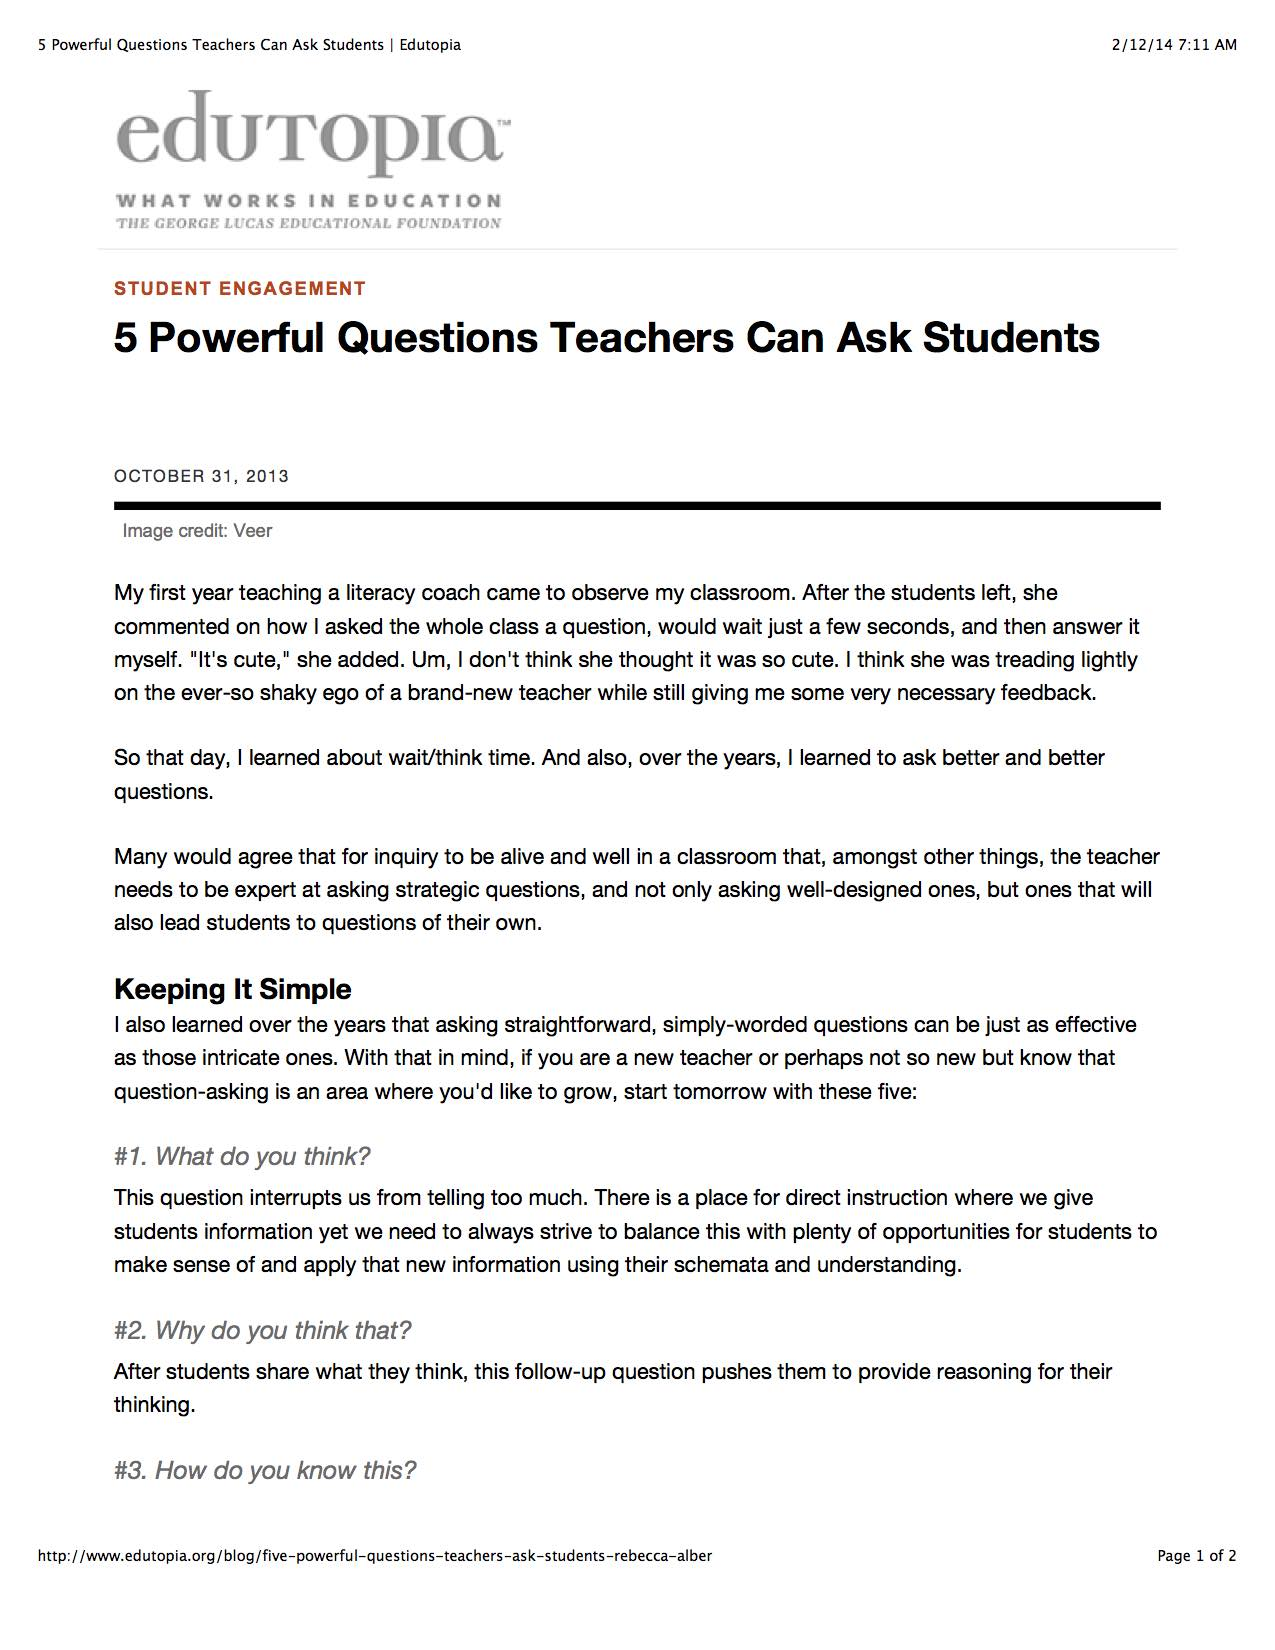 5 powerful questions teachers can ask students inflexion